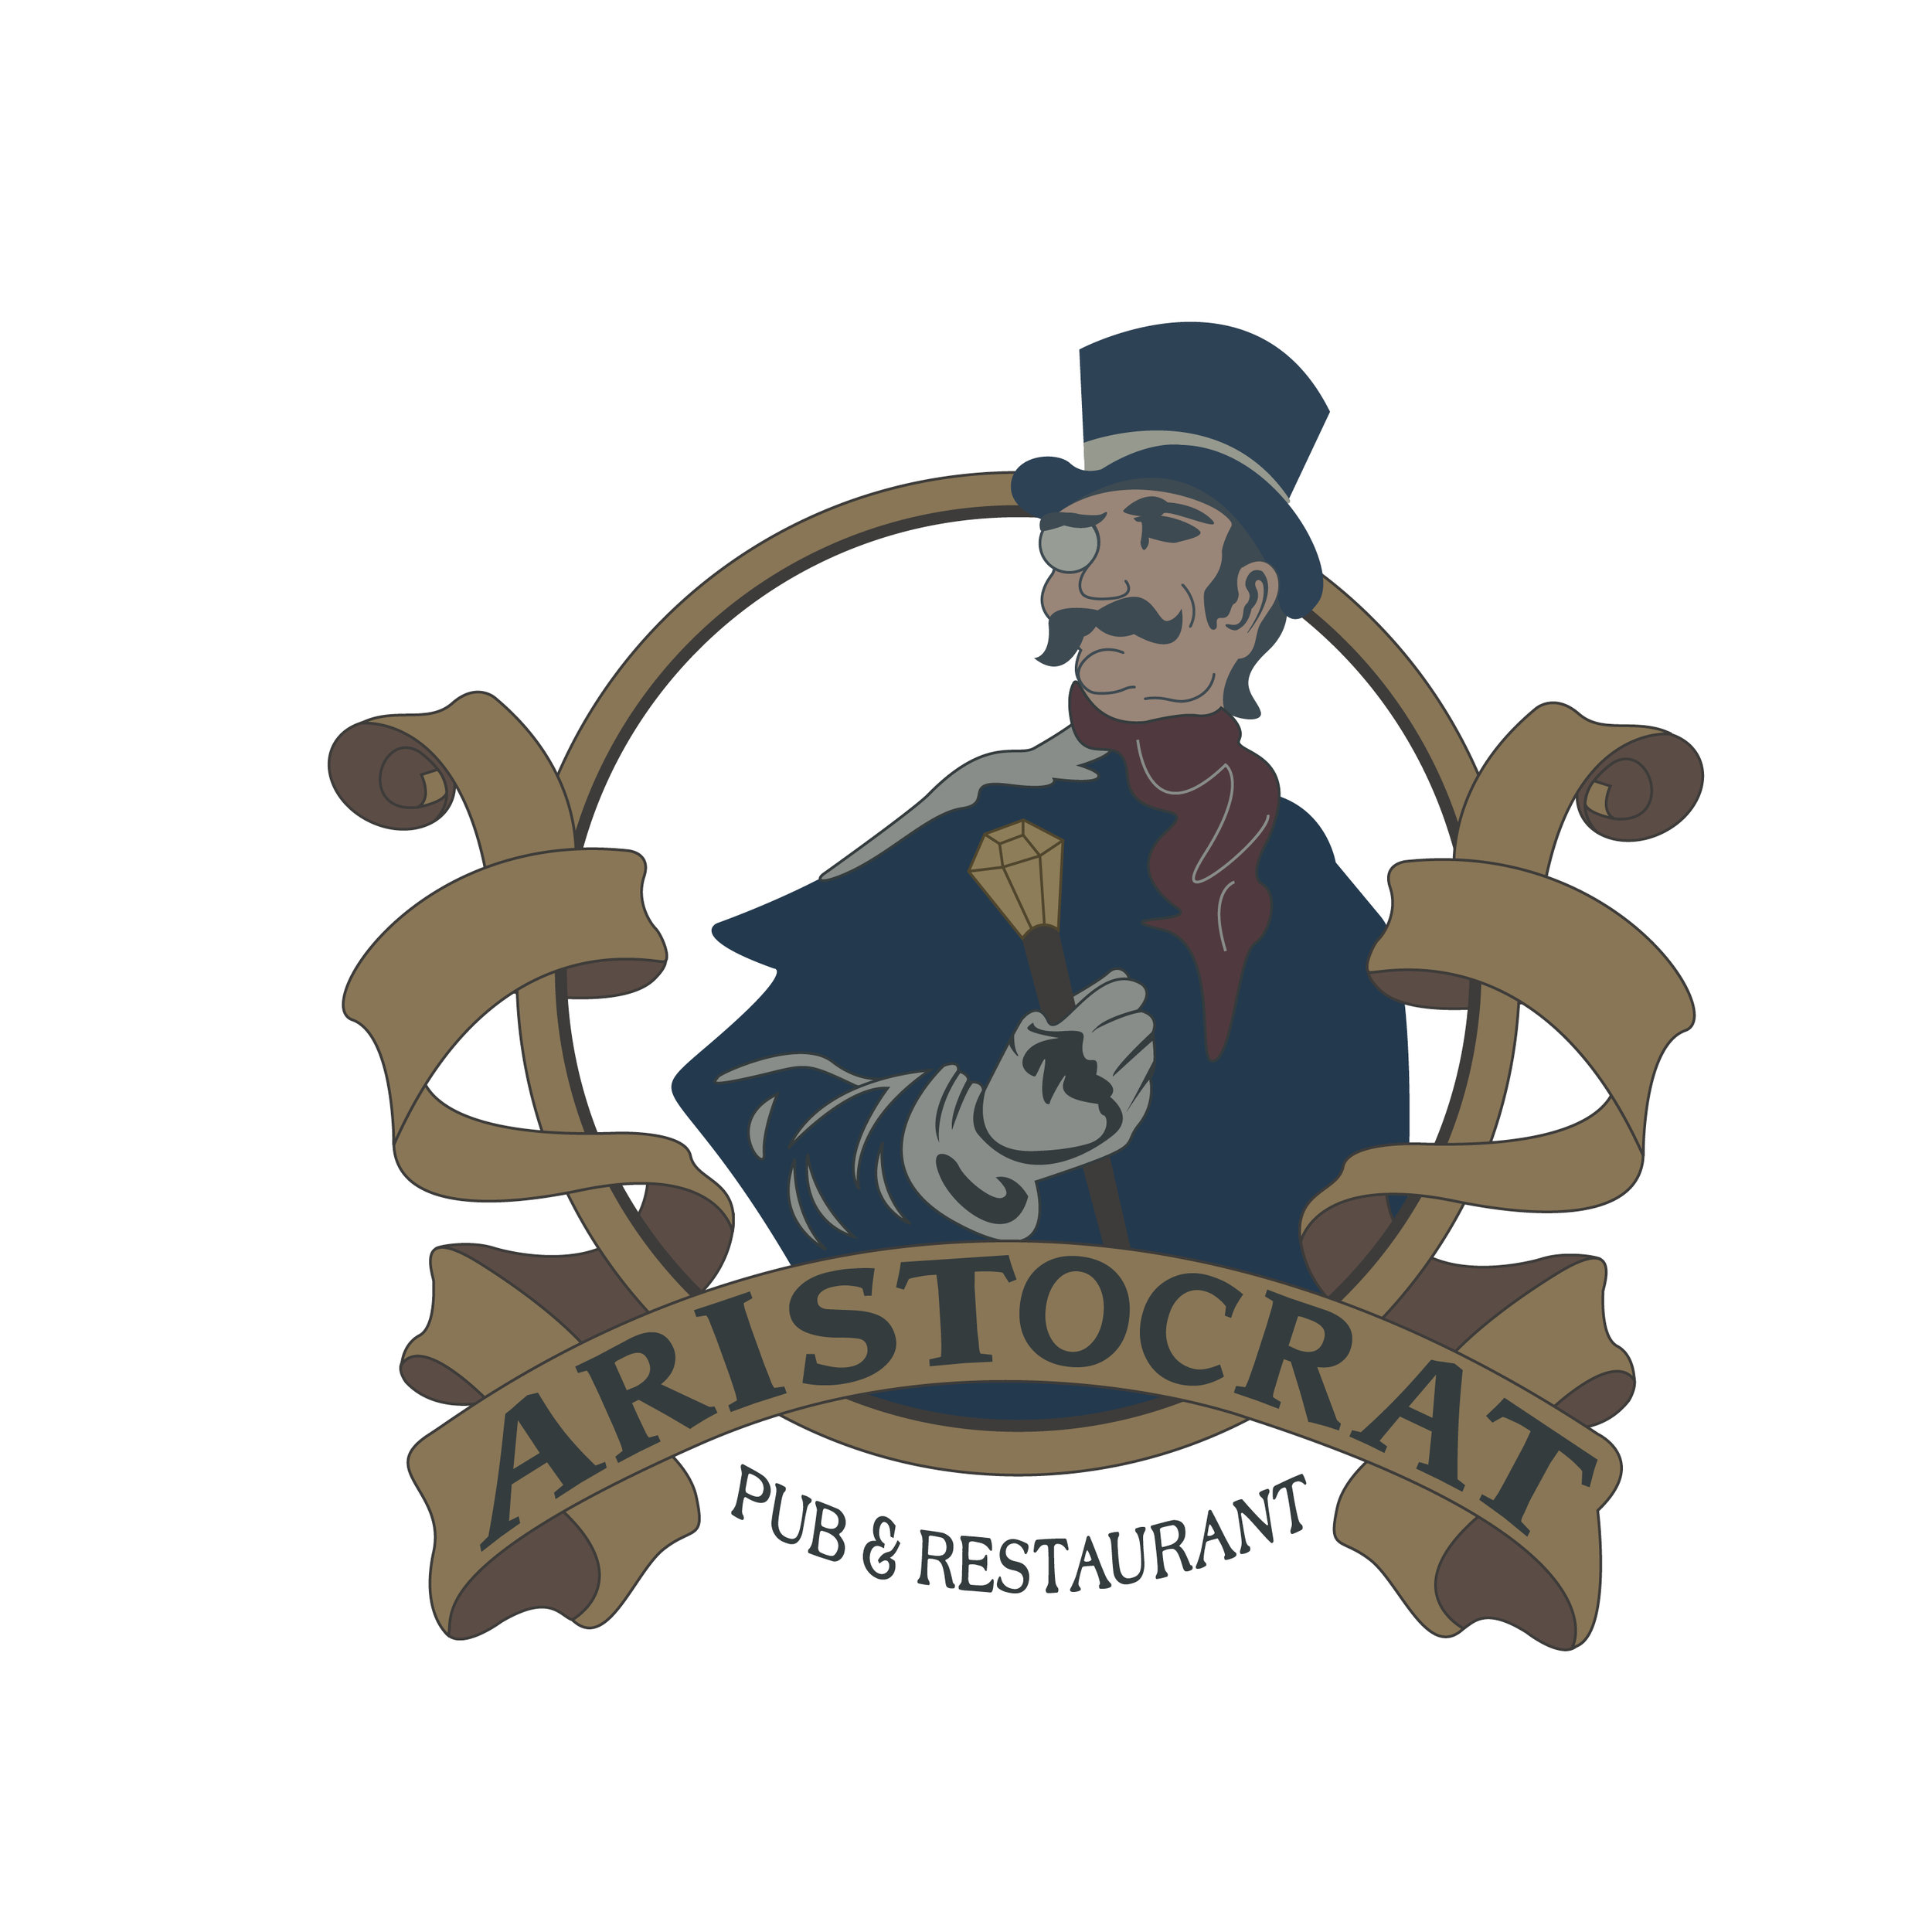 aristocrat logo - color.jpg